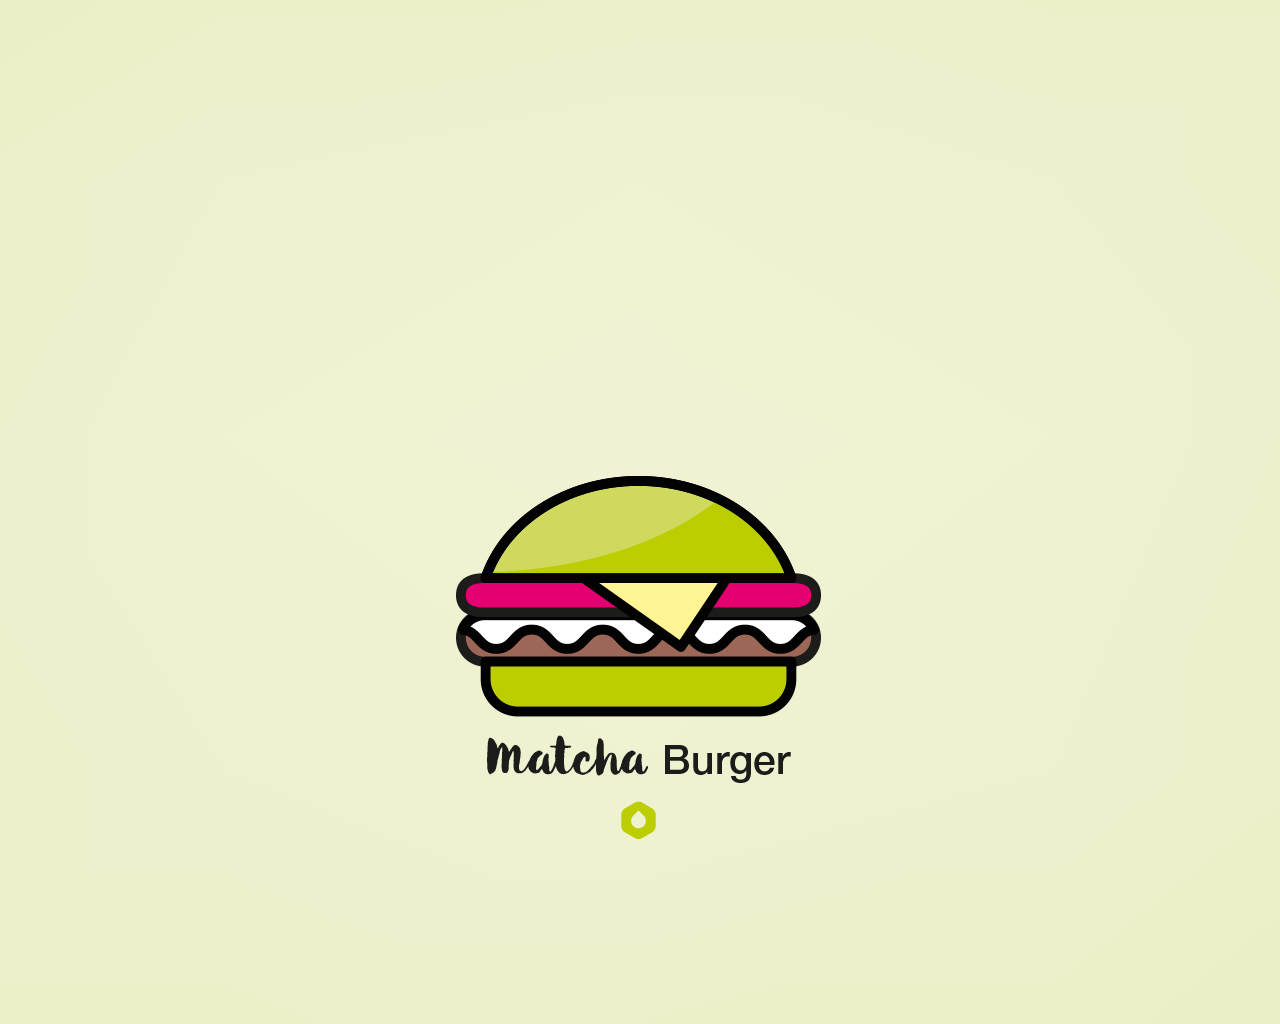 Wallpaper Pick Your Burger - Desktop - Matcha